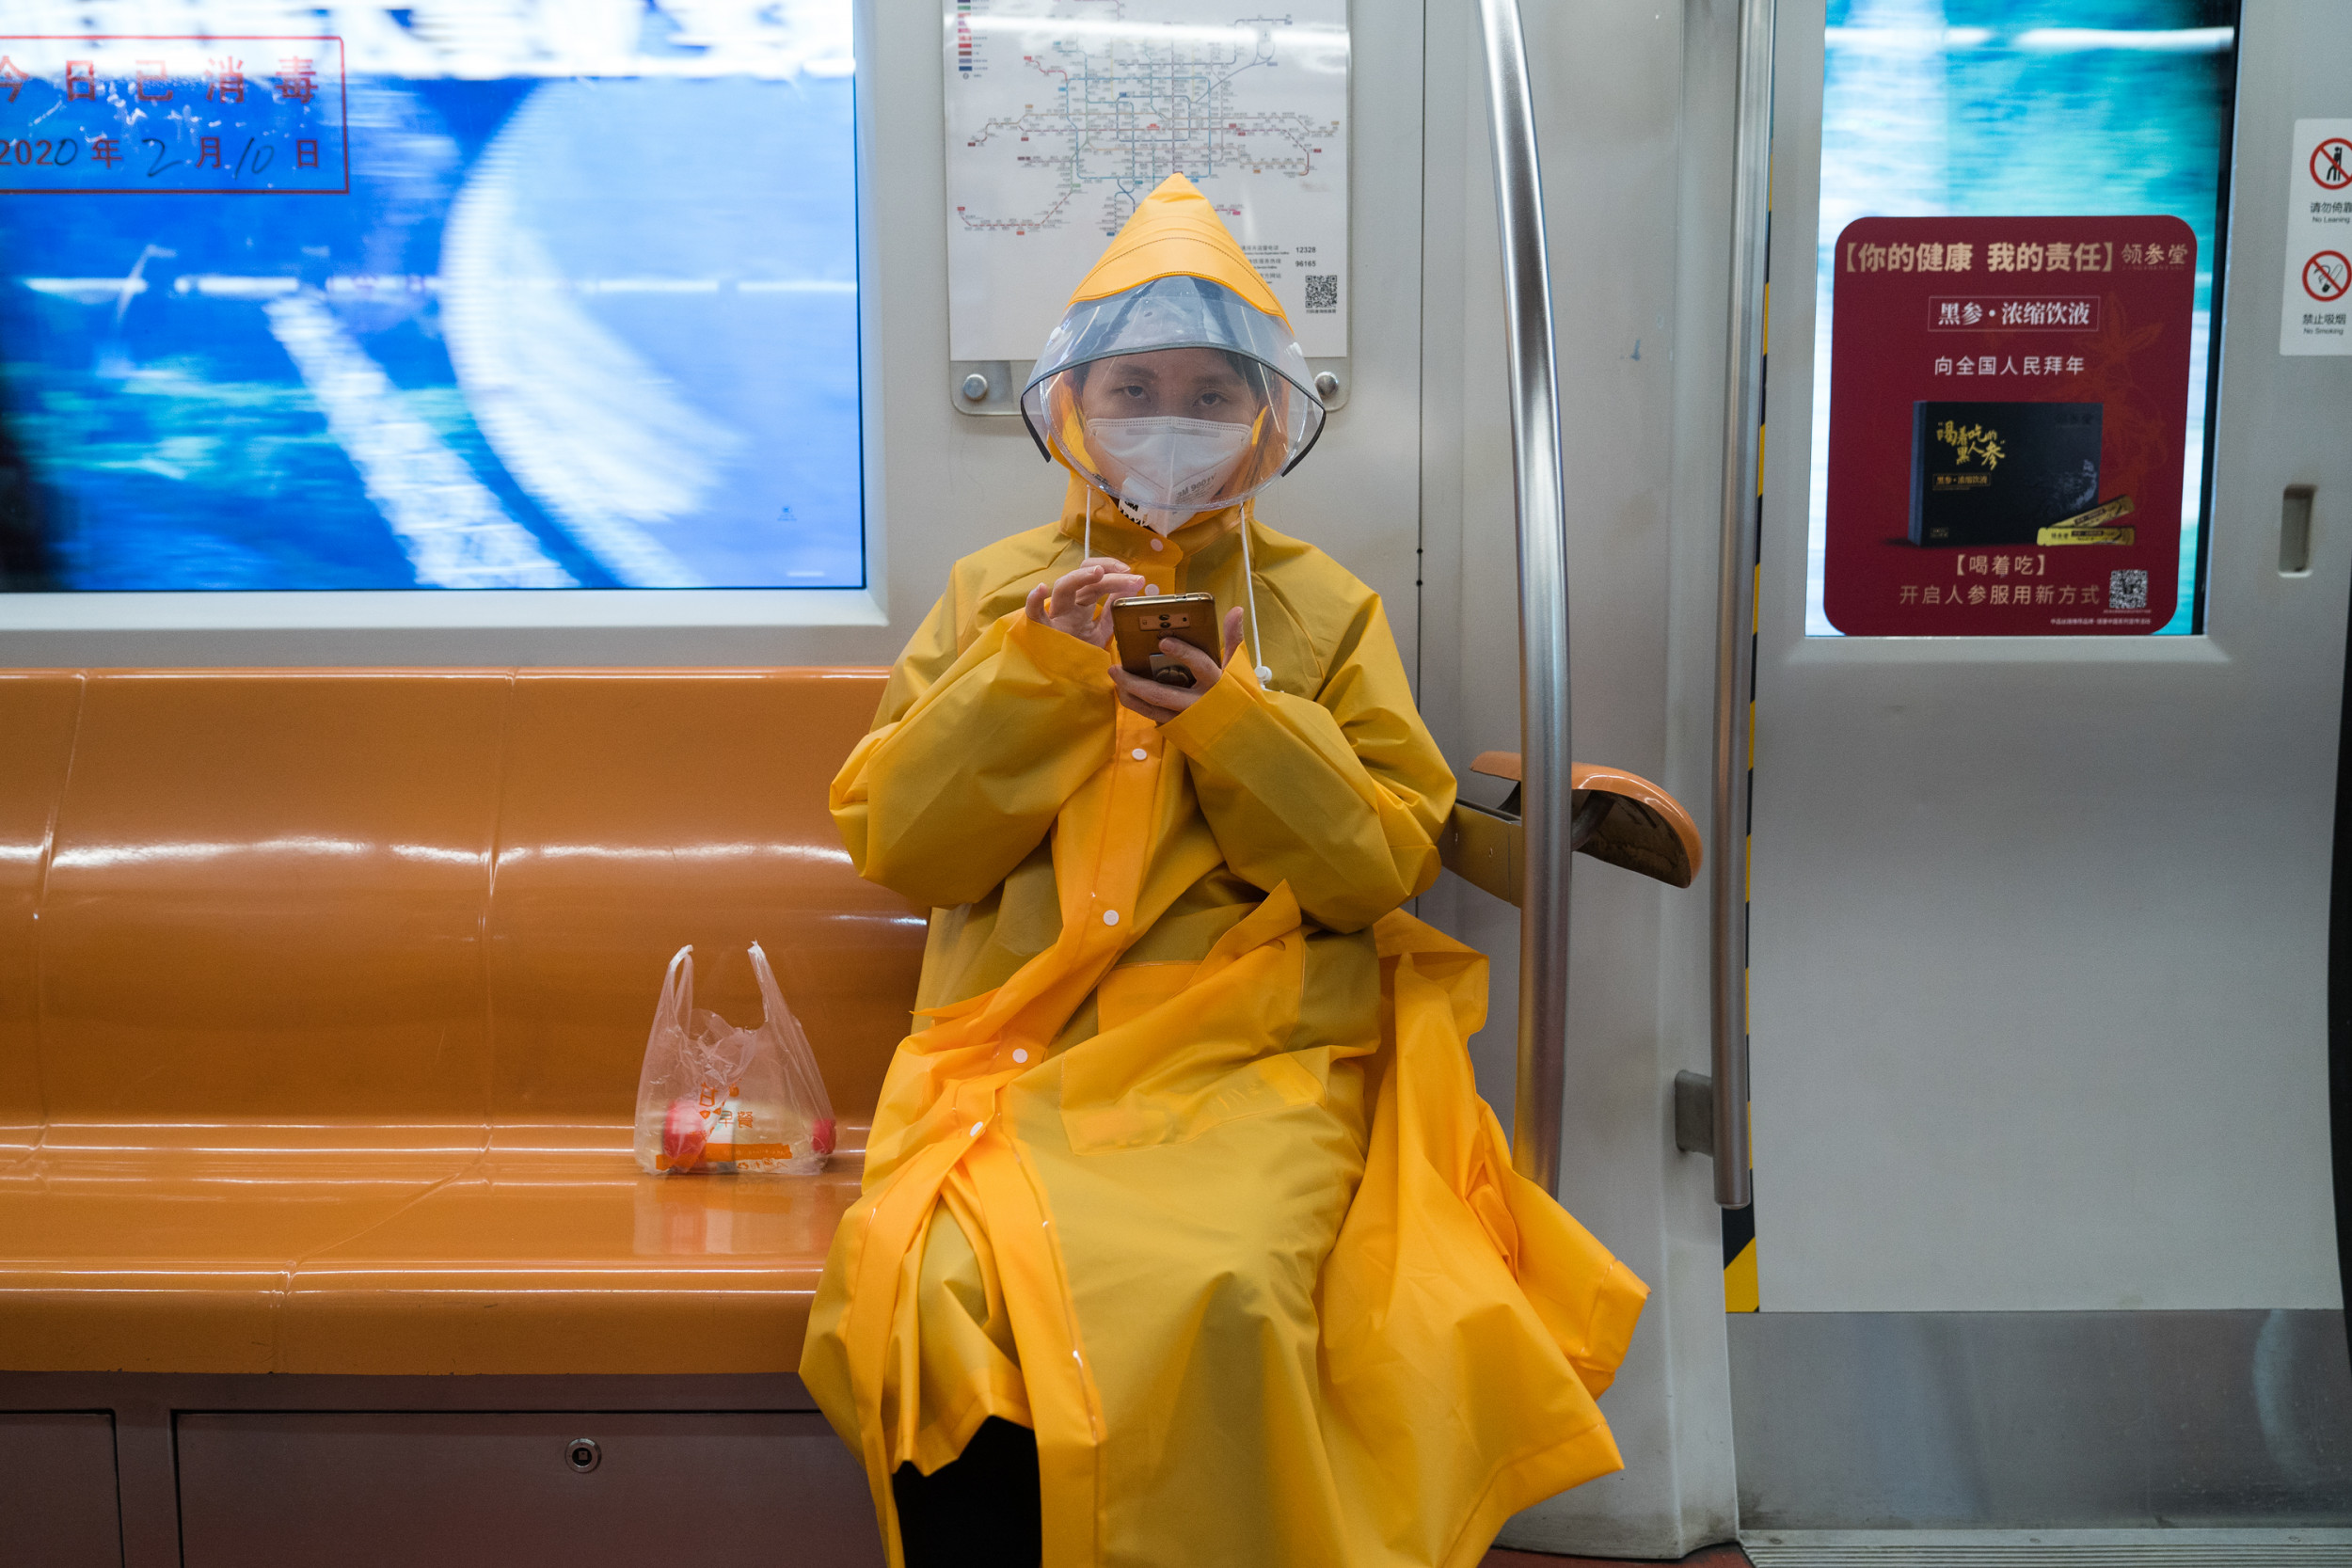 Coronavirus Could Be Airborne, Chinese Official Claims